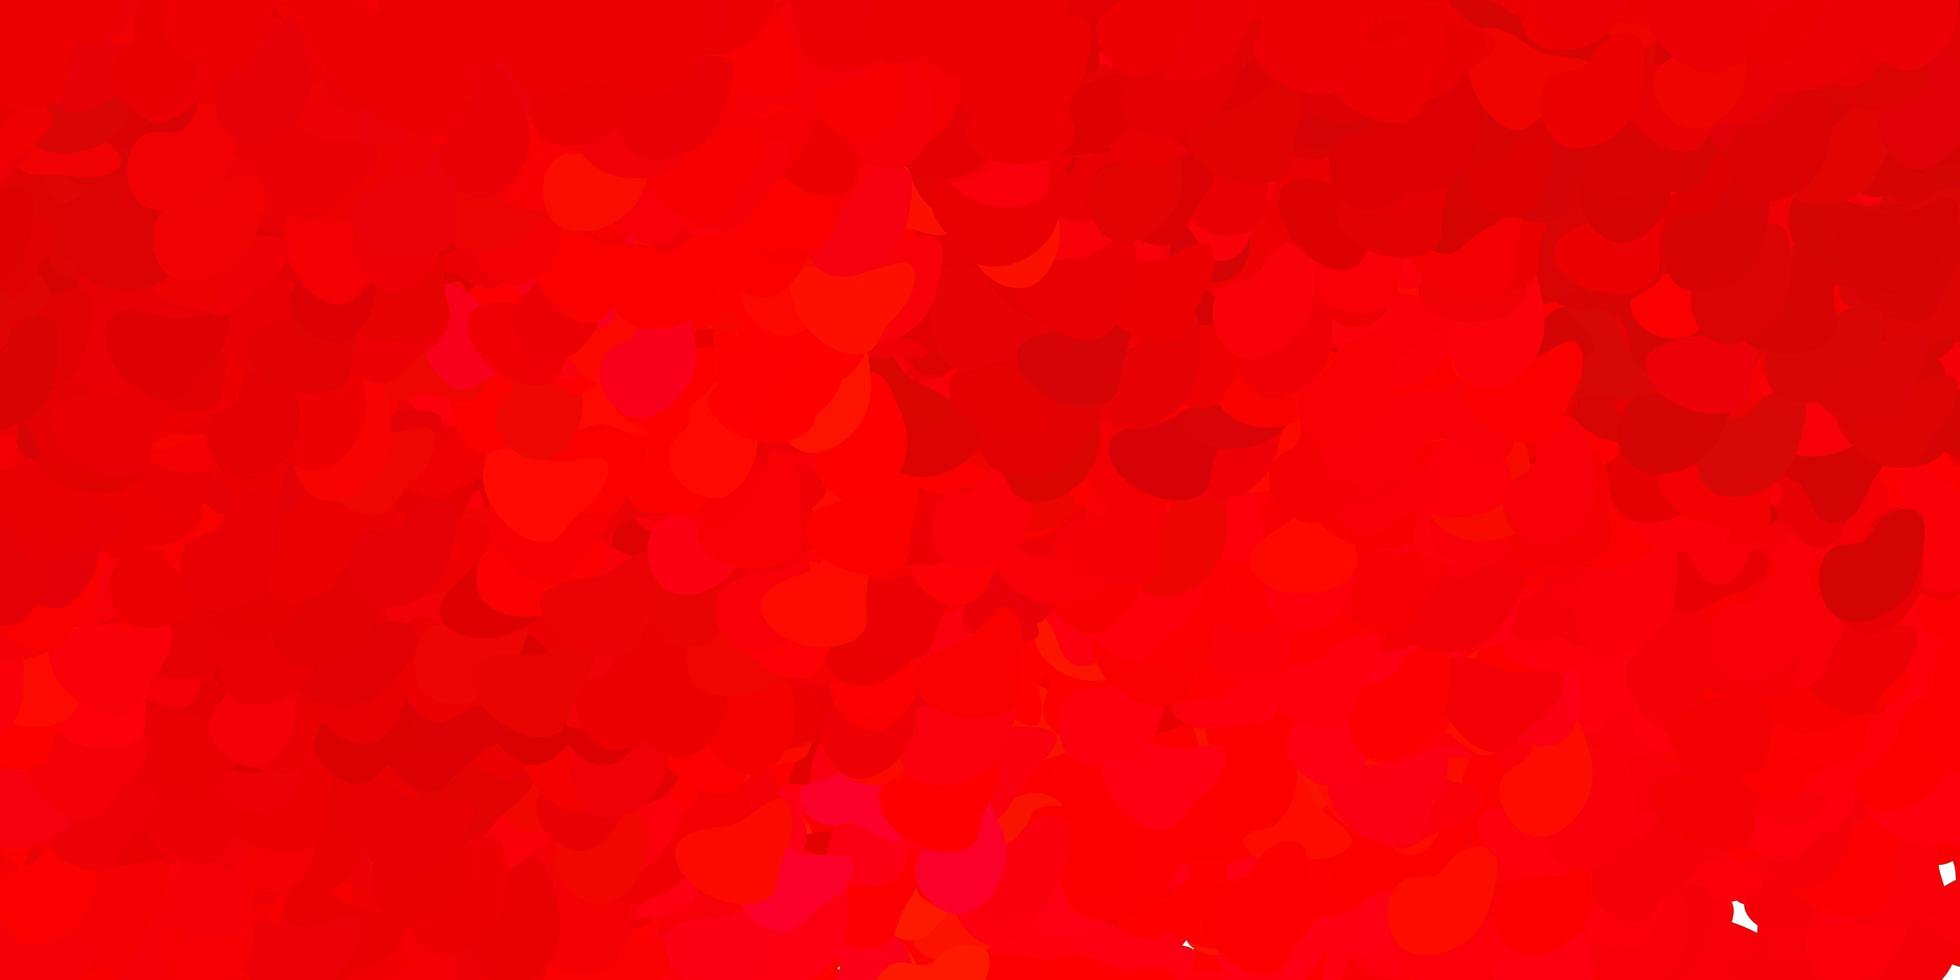 Dark red vector background with random forms.